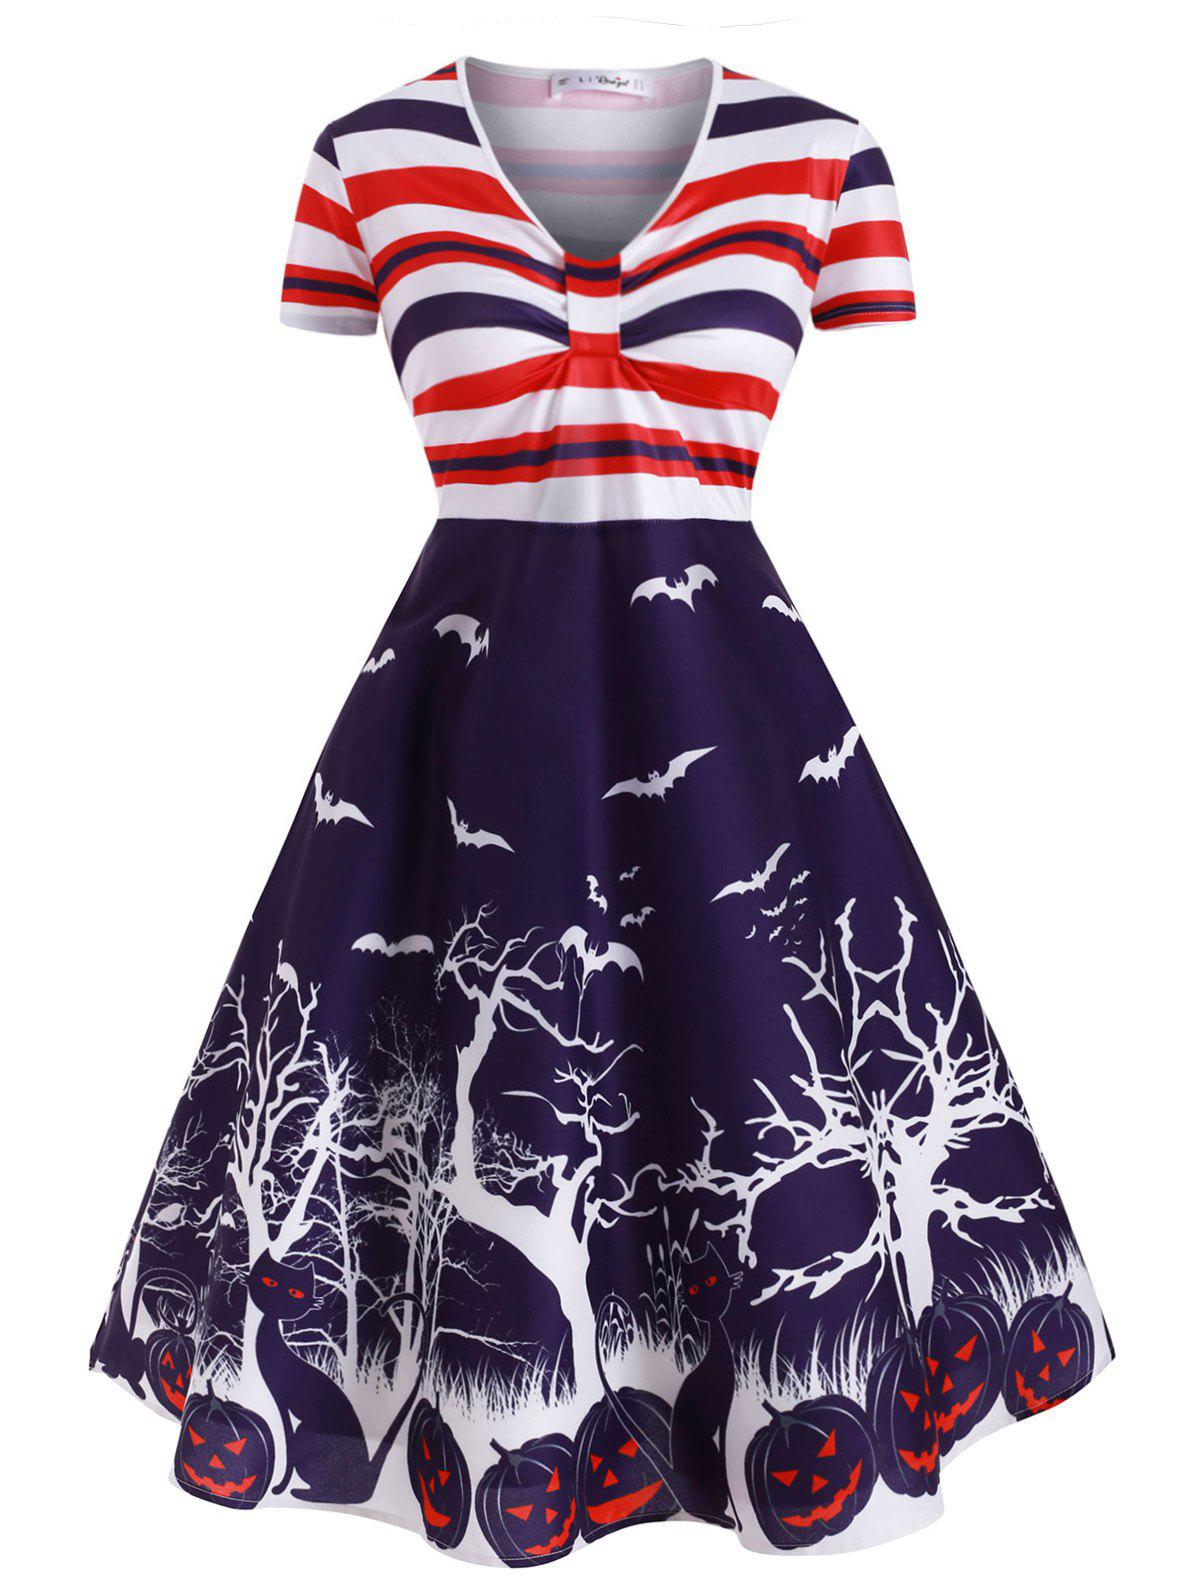 Pumpkin Bat Print Stripes Halloween Plus Size Dress